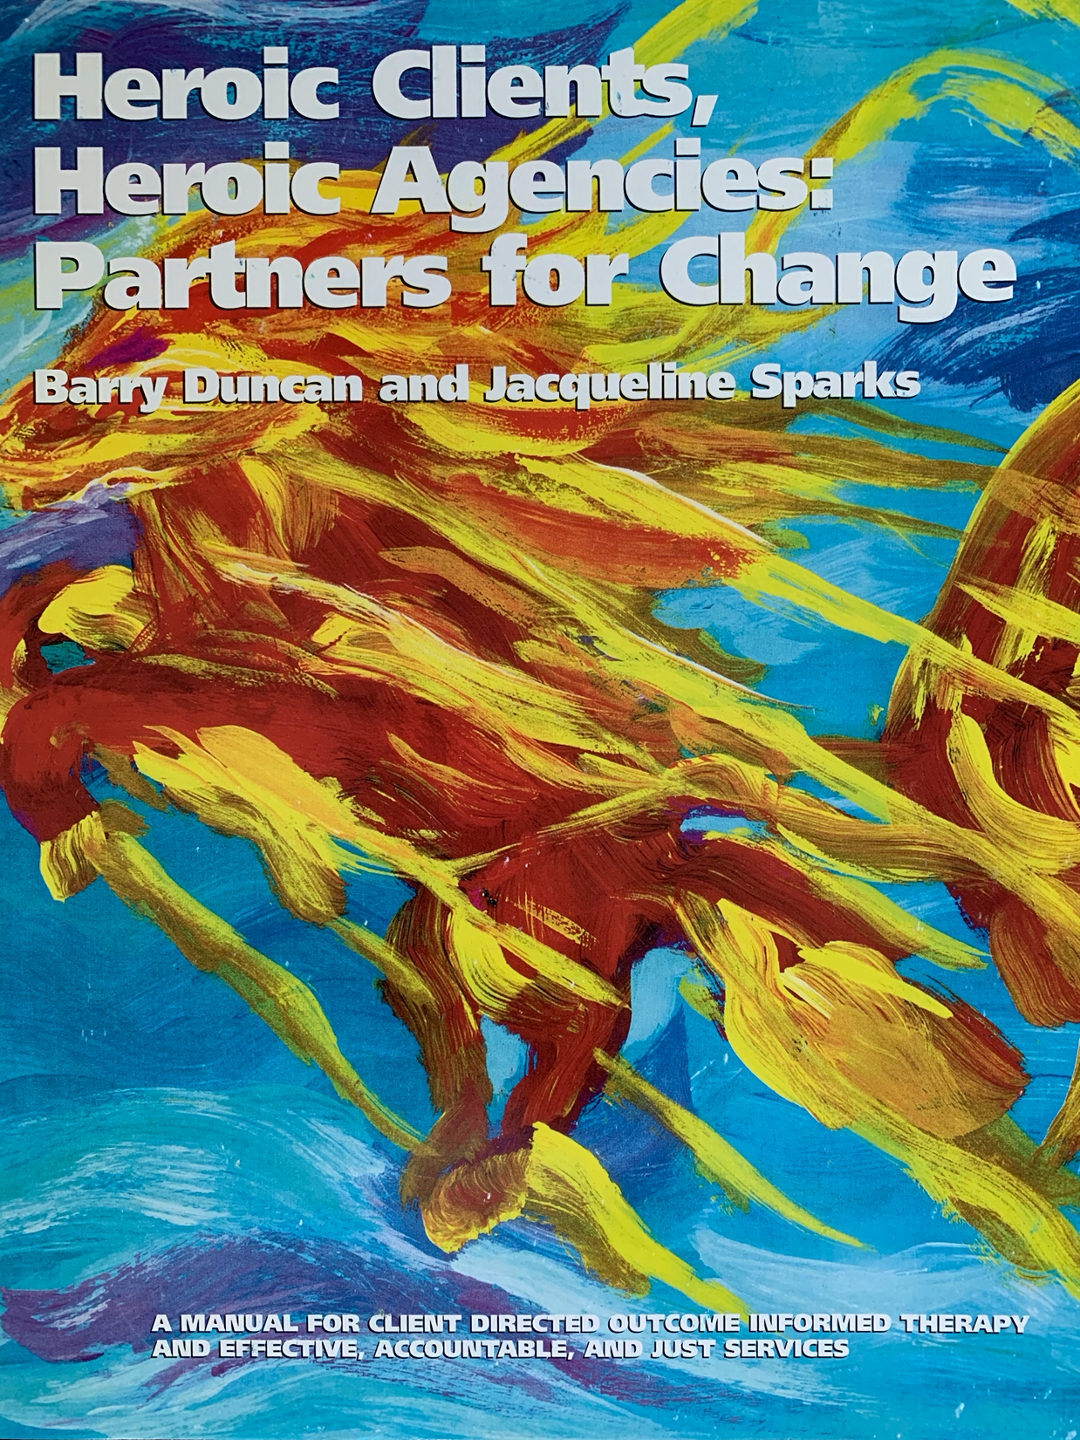 Front cover of the book titled Heroic Clients, Heroic Agencies: Partners for Change (Duncan & Sparks, 2007)